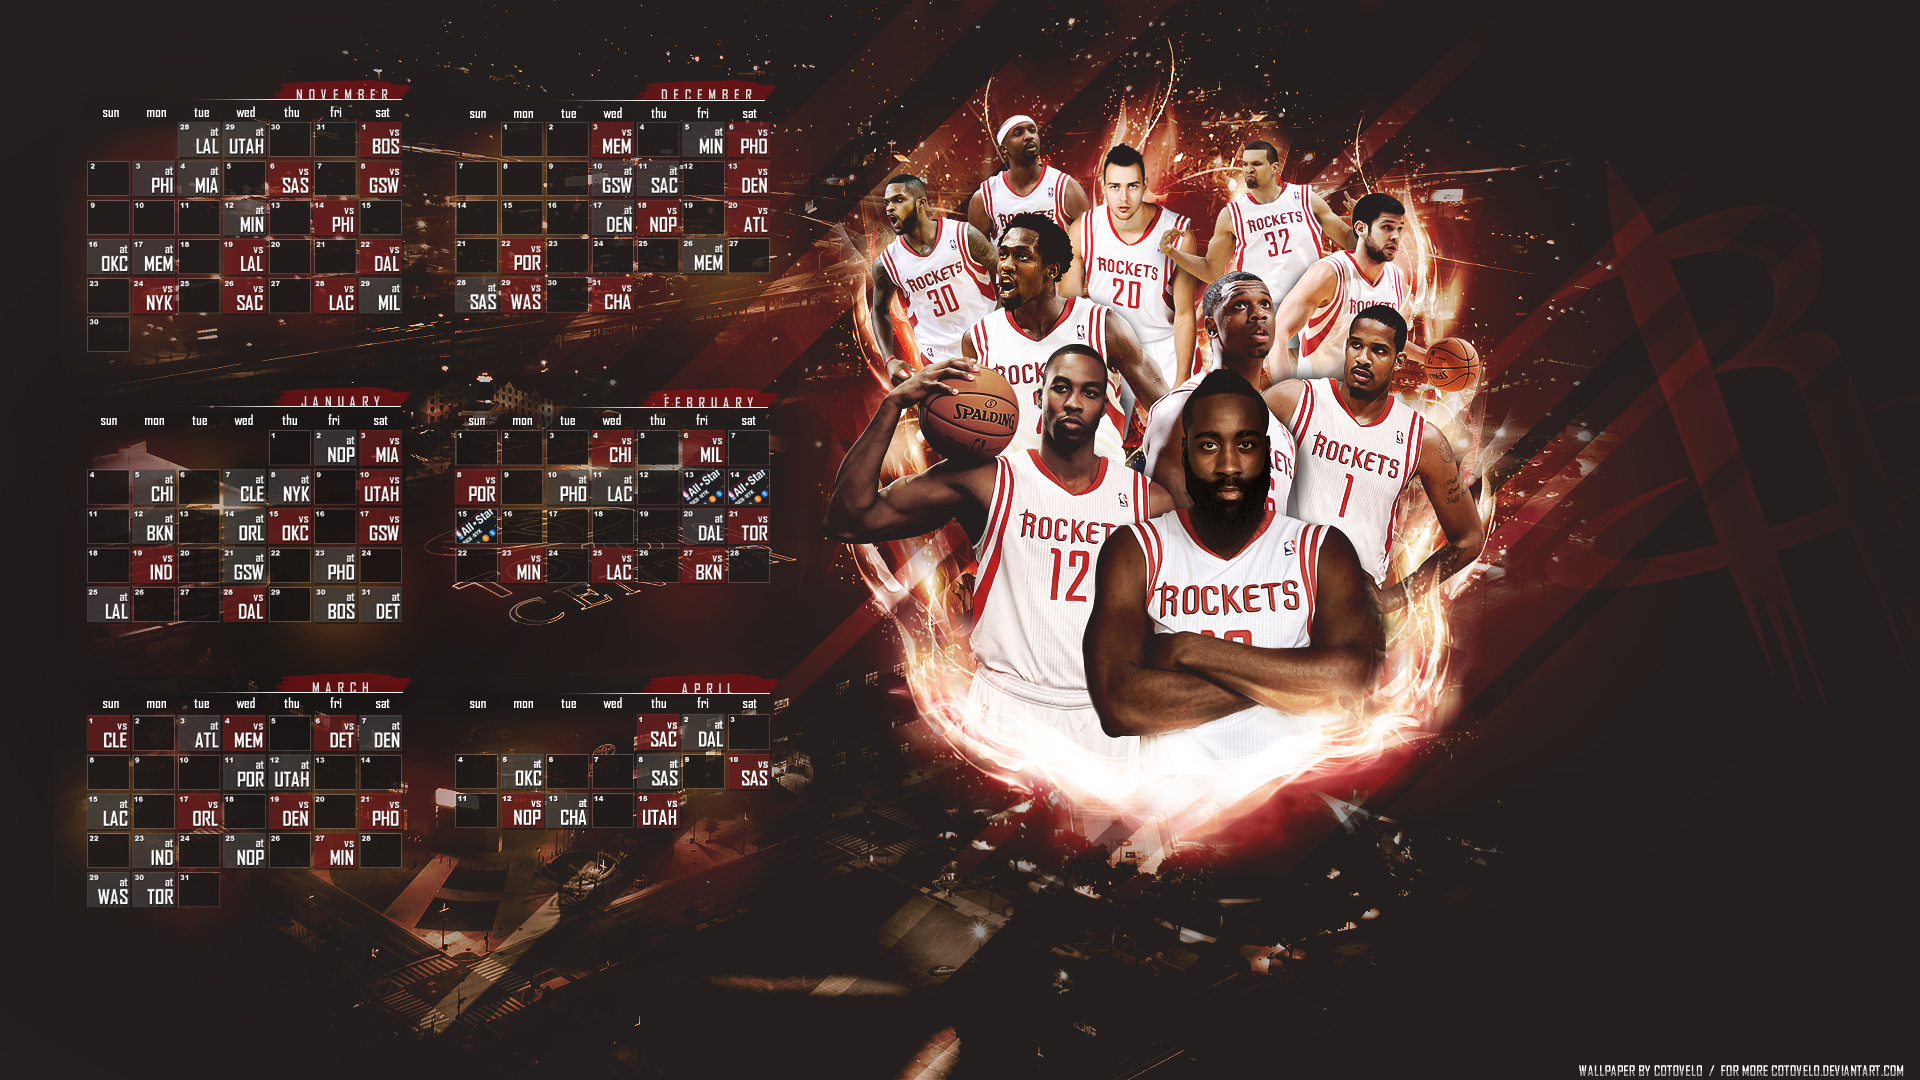 houston rockets schedule 14 15 by cotovelo on deviantart